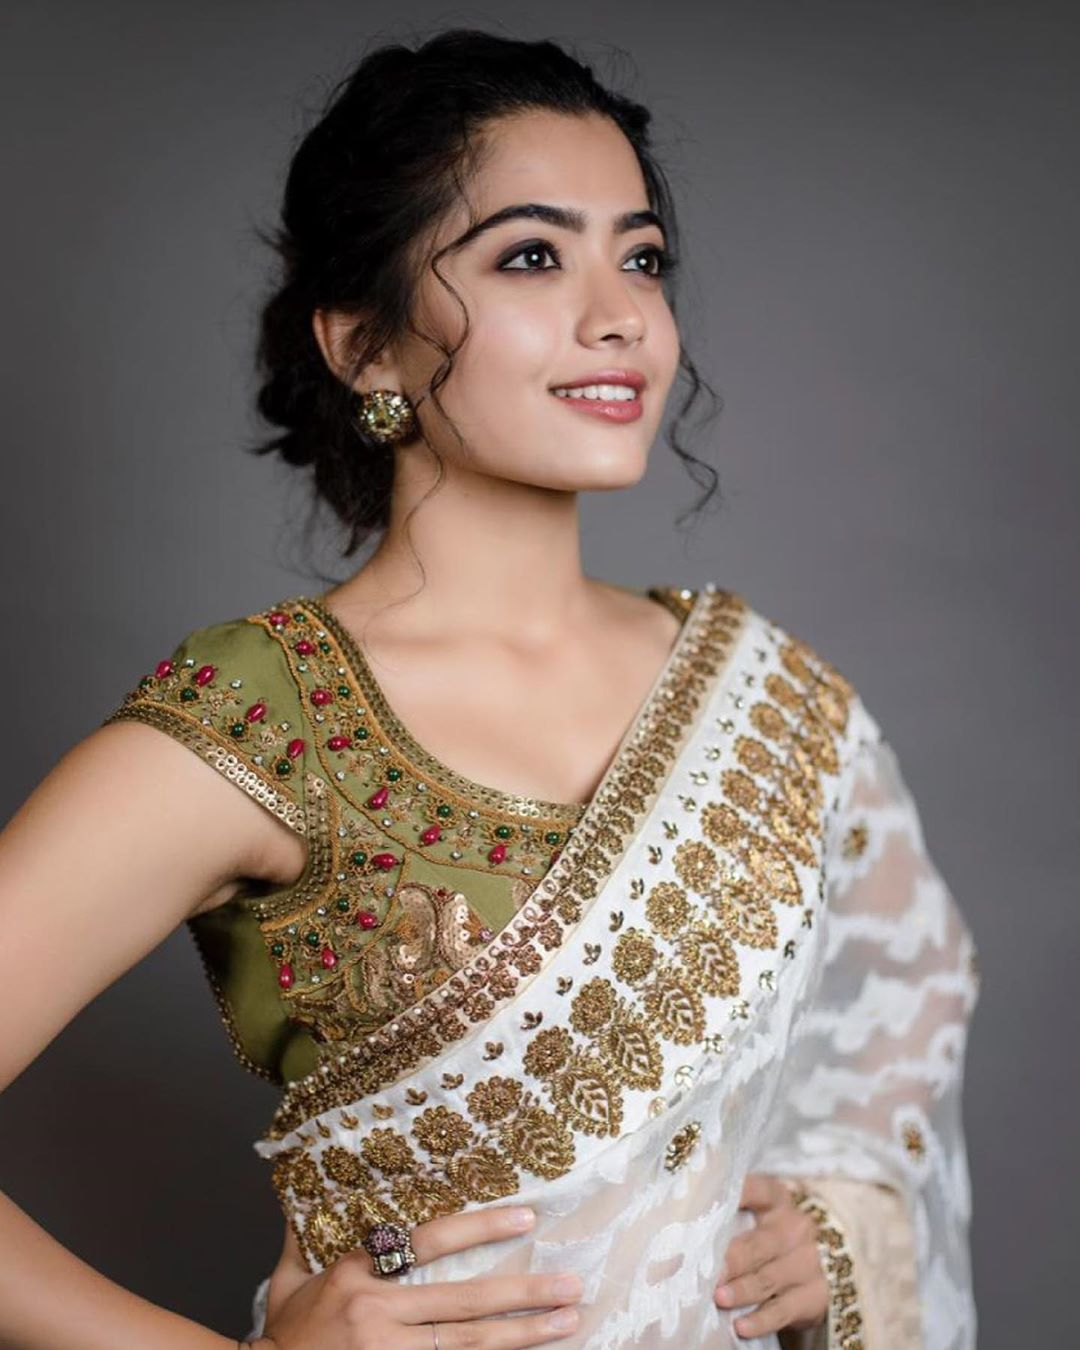 Rashmika Mandanna New Latest Hd Photos Sarileru Neekevvaru Bheeshma Movie Heroine Actress Rashmika Mandanna Photo Shoot Images 25cineframes